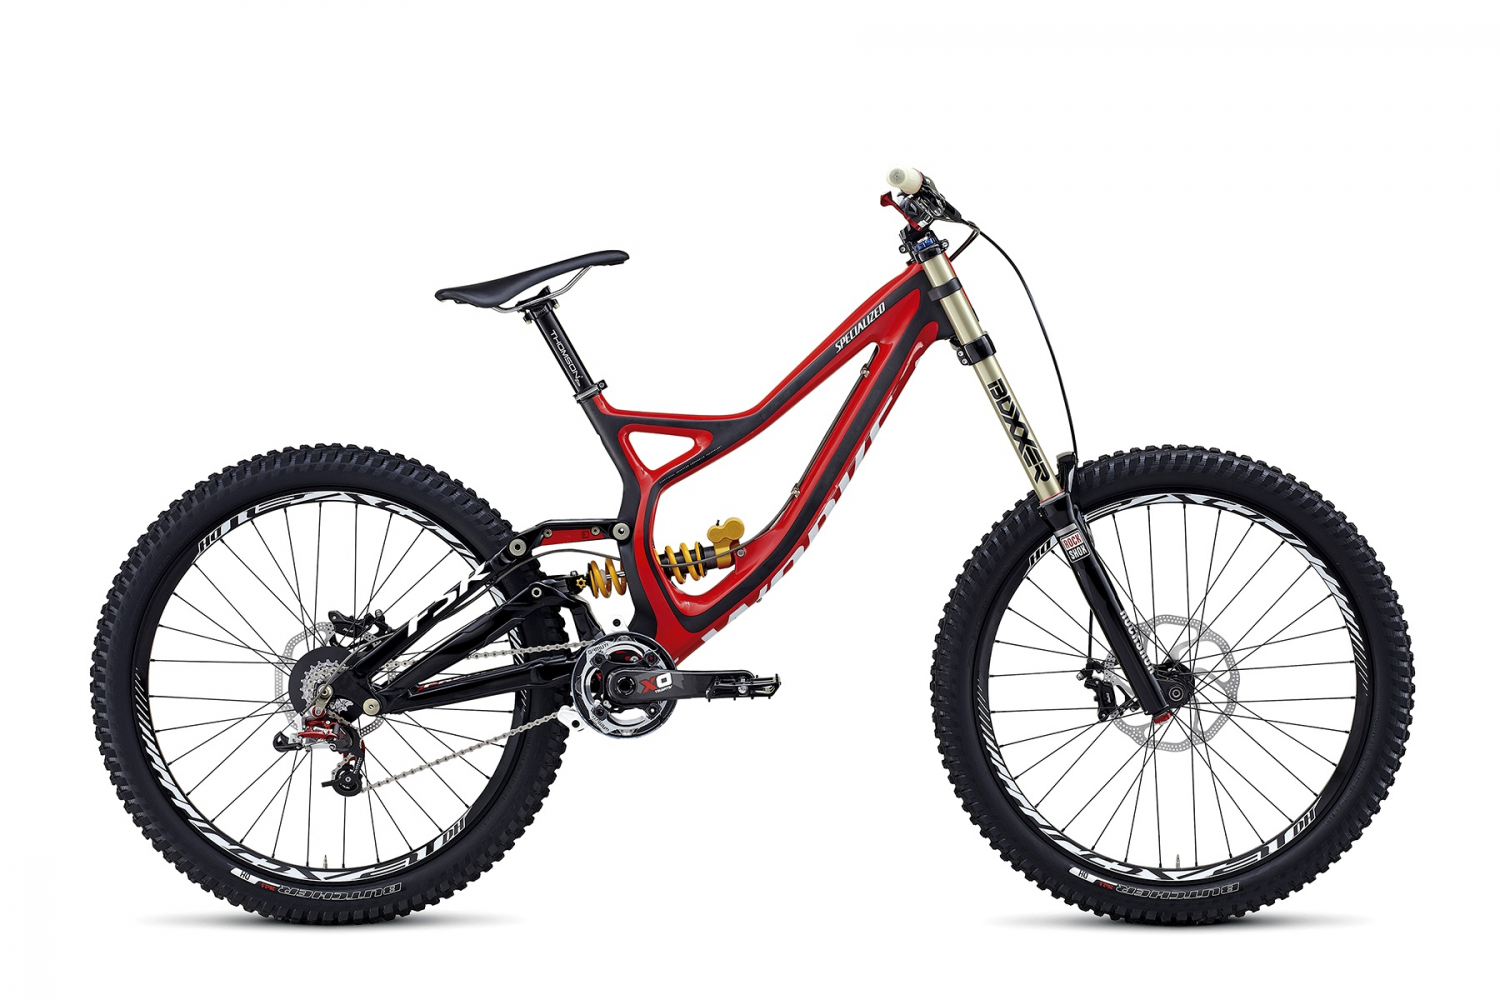 S-WORKS горные велосипеды Specialized S-Works DEMO 8 2014 Артикул 99914-0003